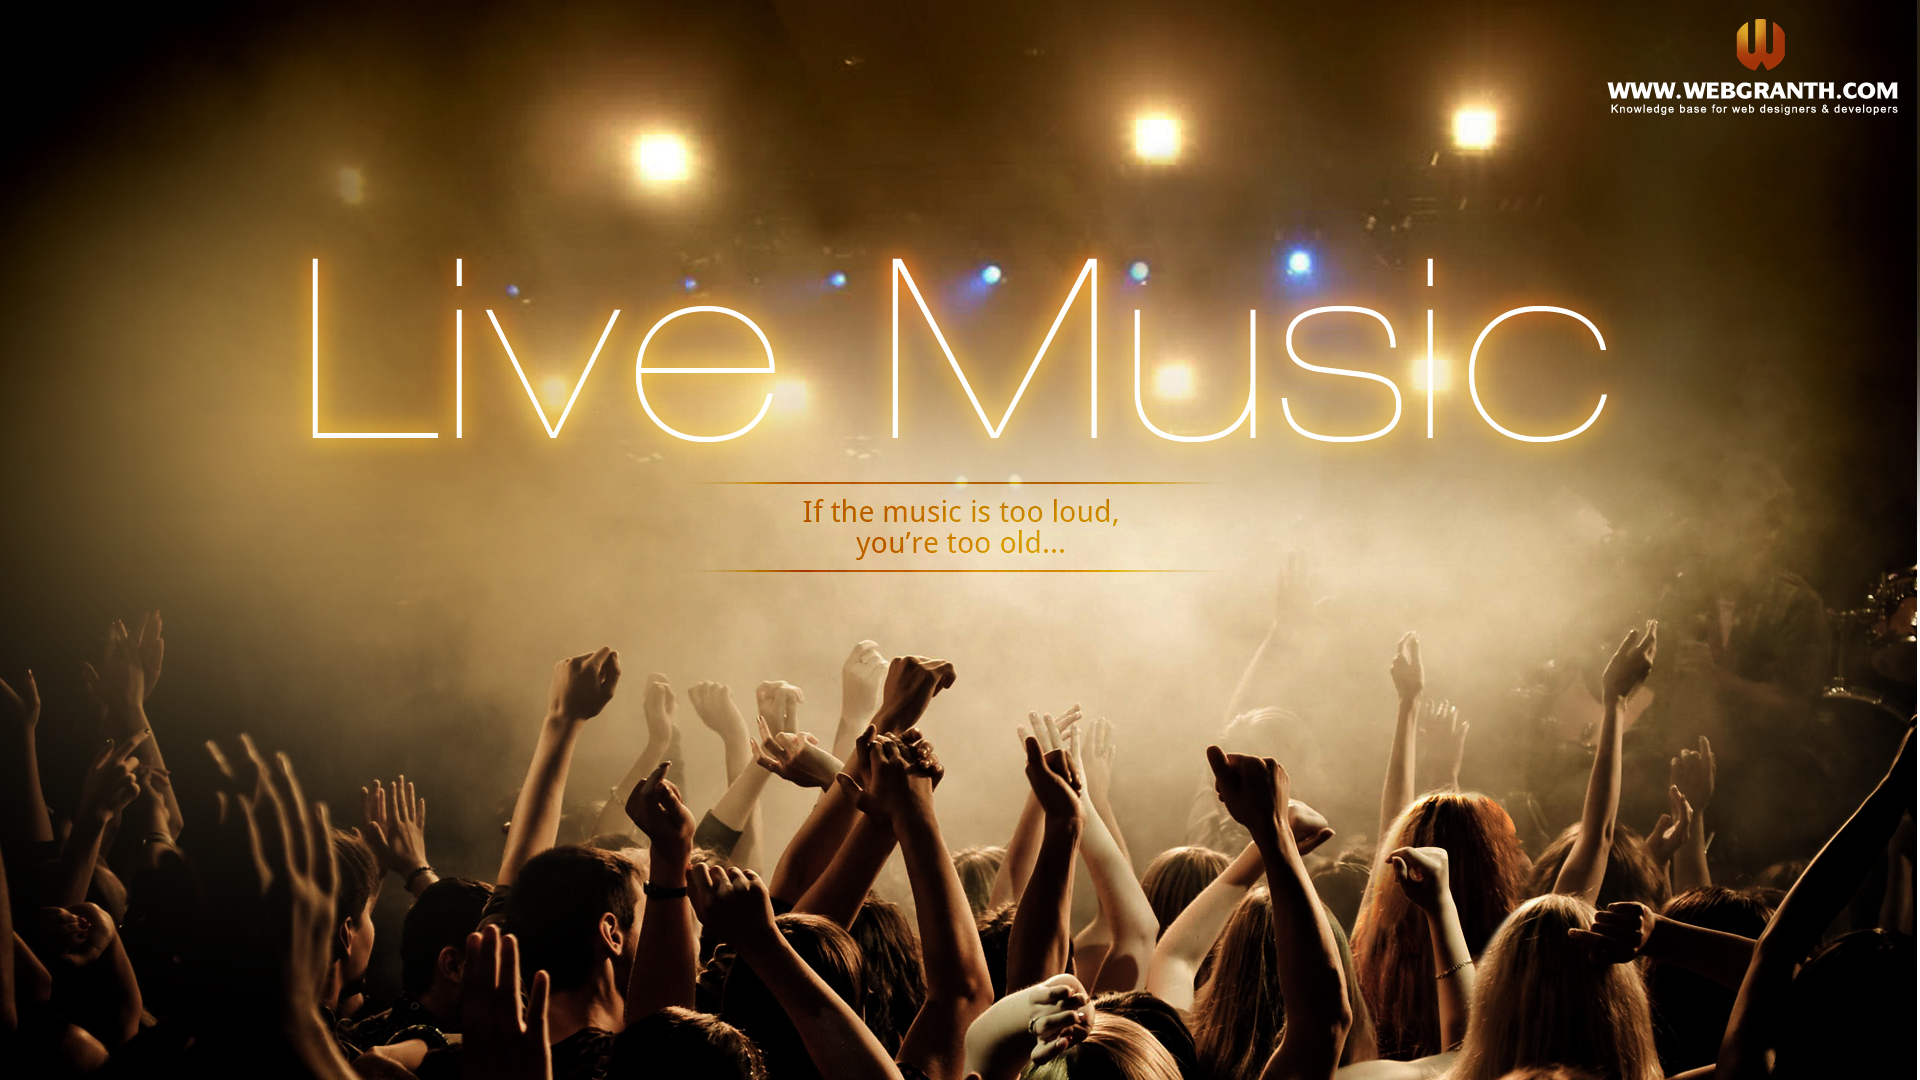 Live hd wallpaper 1920x1080 wallpapersafari - Music hd wallpapers free download ...